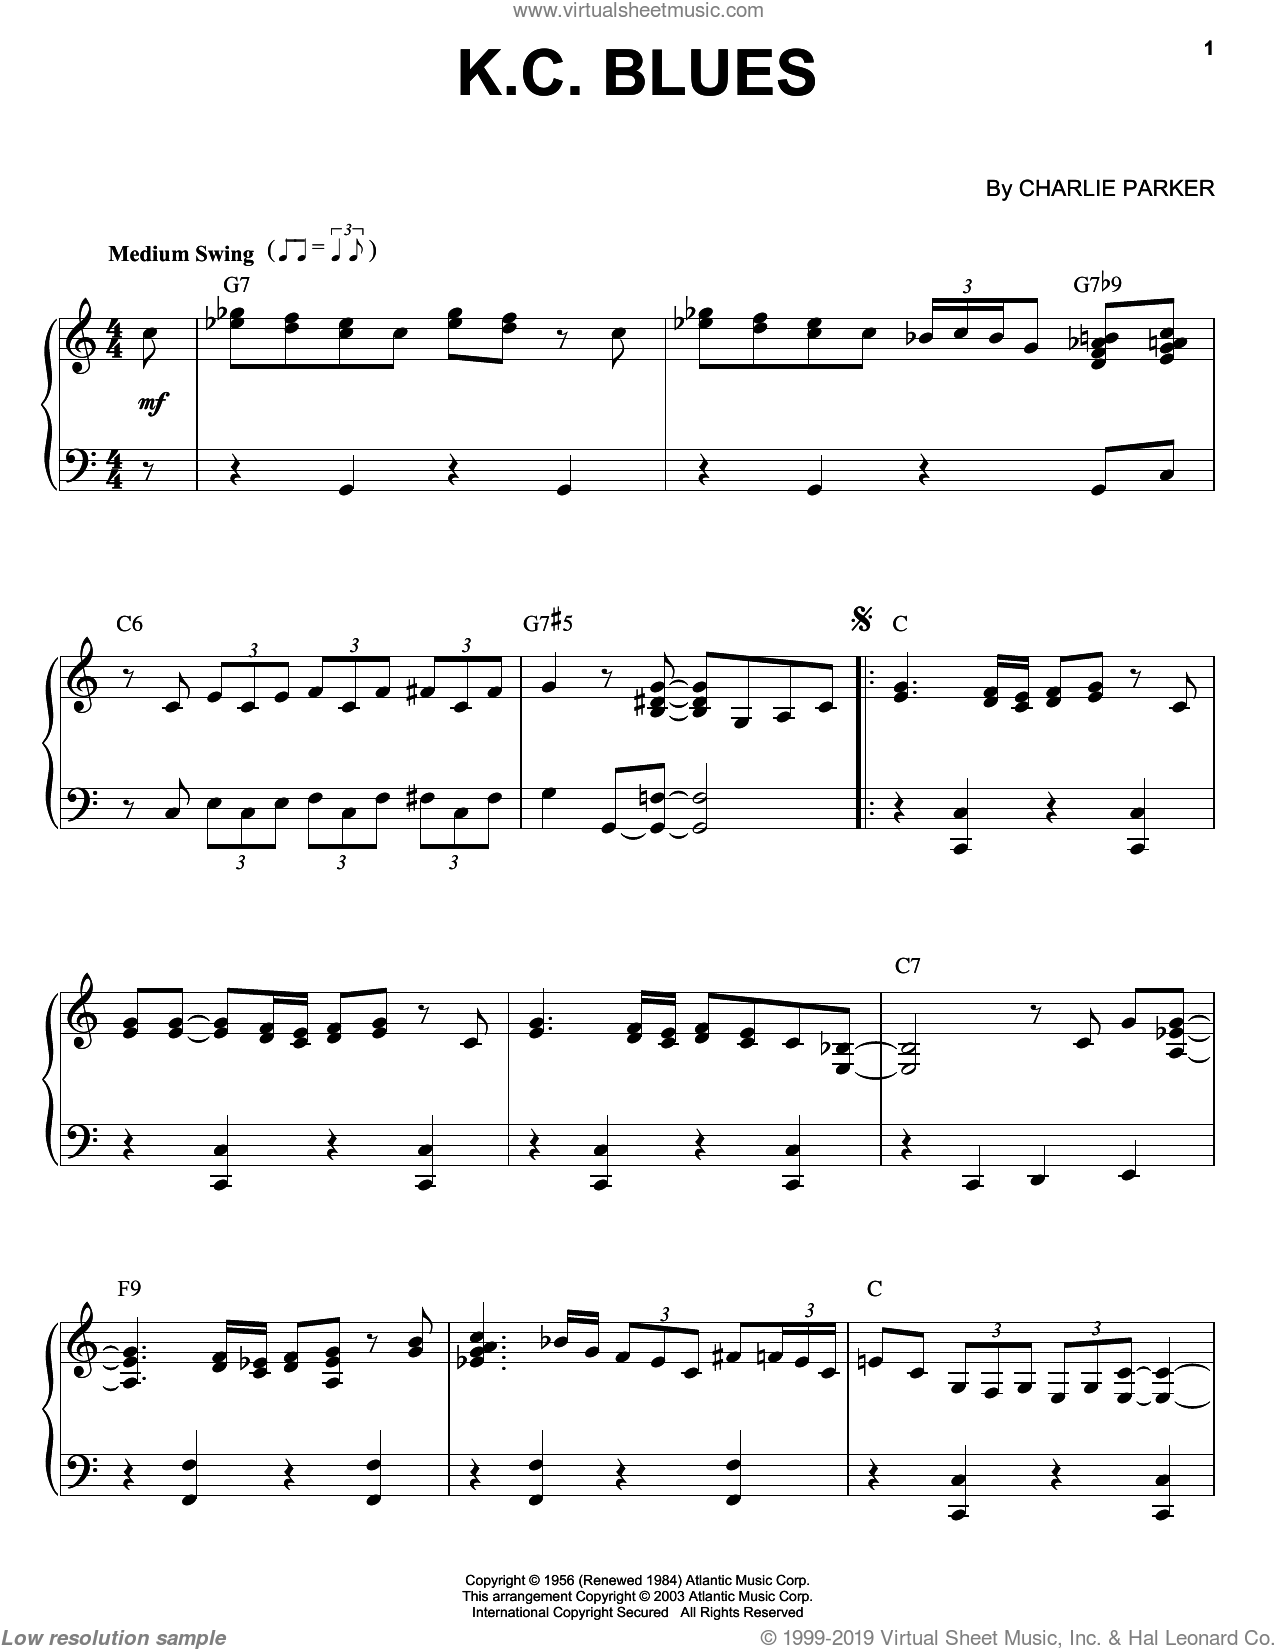 K.C. Blues sheet music for piano solo by Charlie Parker, intermediate piano. Score Image Preview.